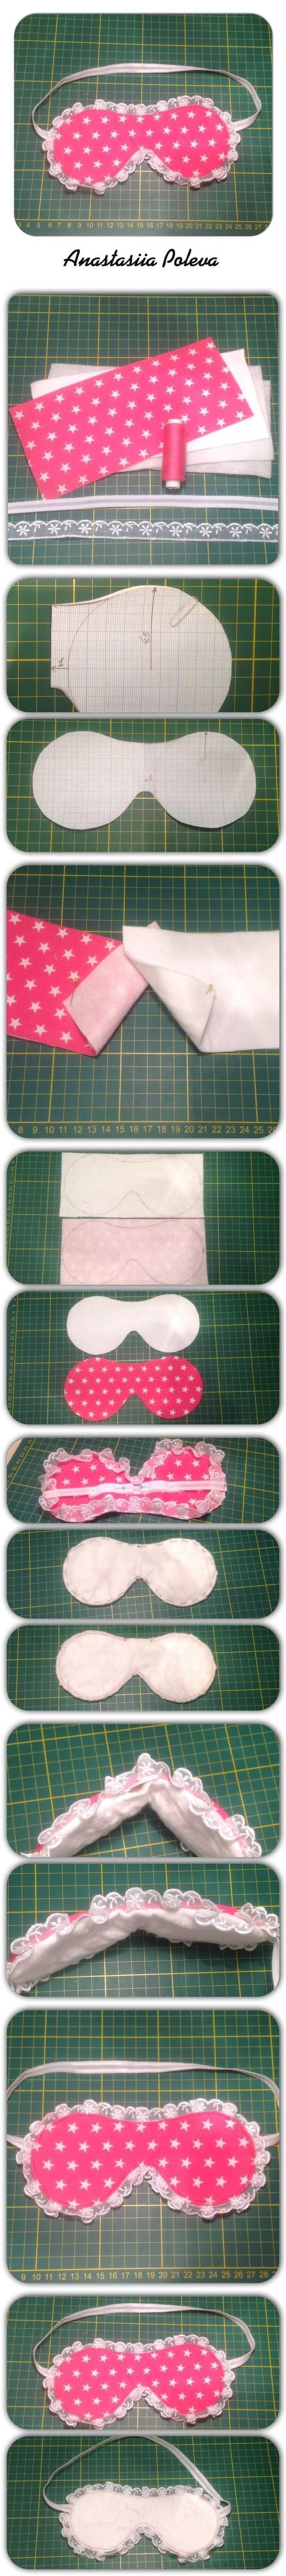 DIY Sleeping Mask- sleeping in a strange place, this could come in handy. The design possibilities are endless